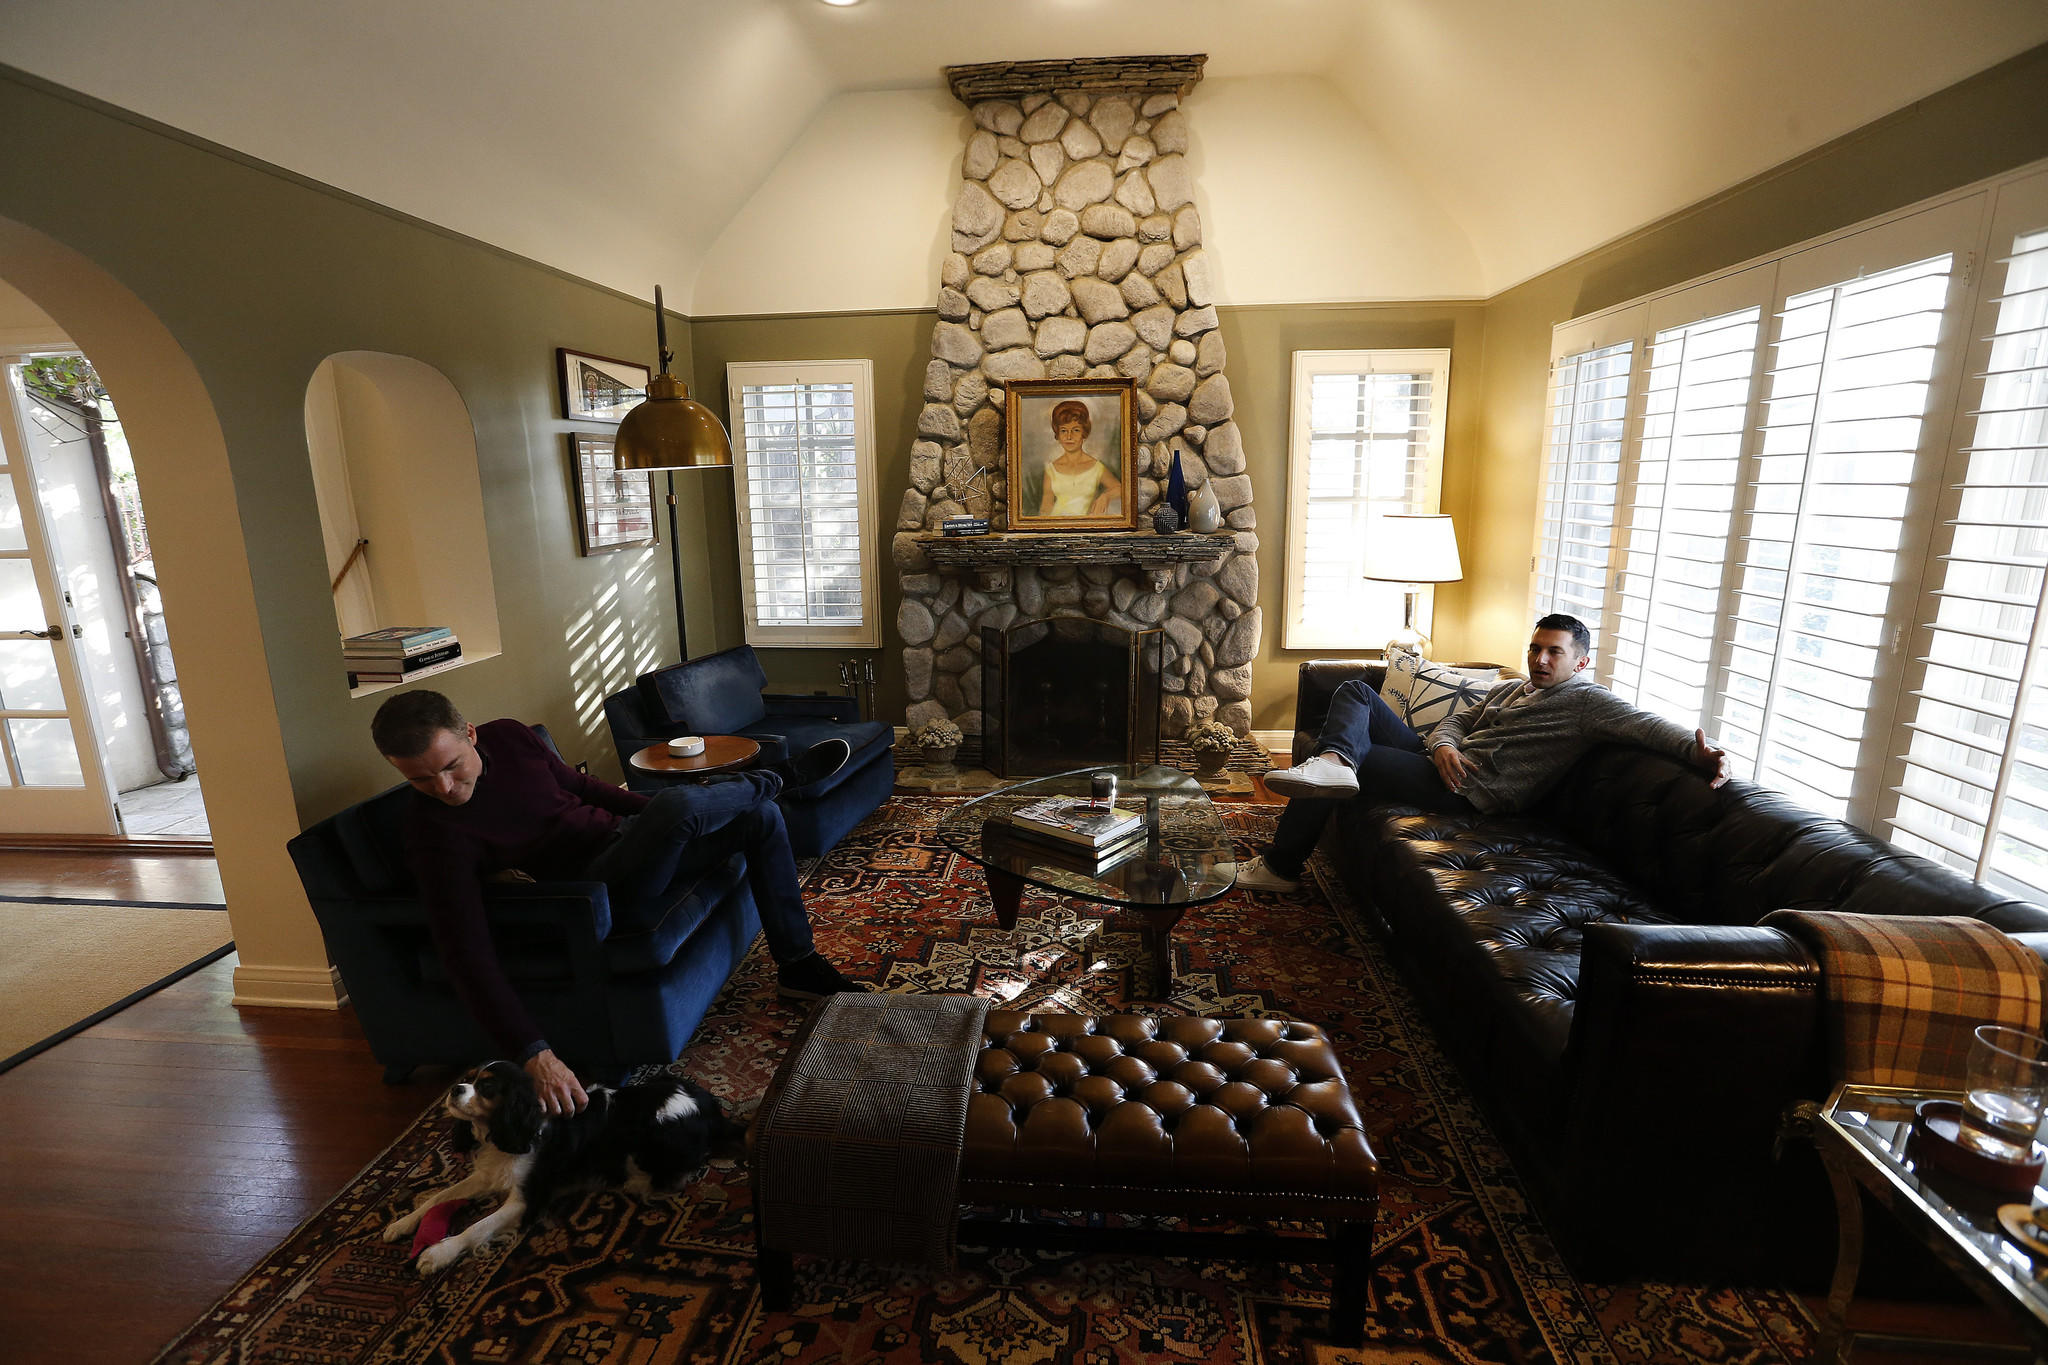 Patrick Wildnauer, left, and his husband Tom Balamaci,  sit inside the living room of their English cottage style home.